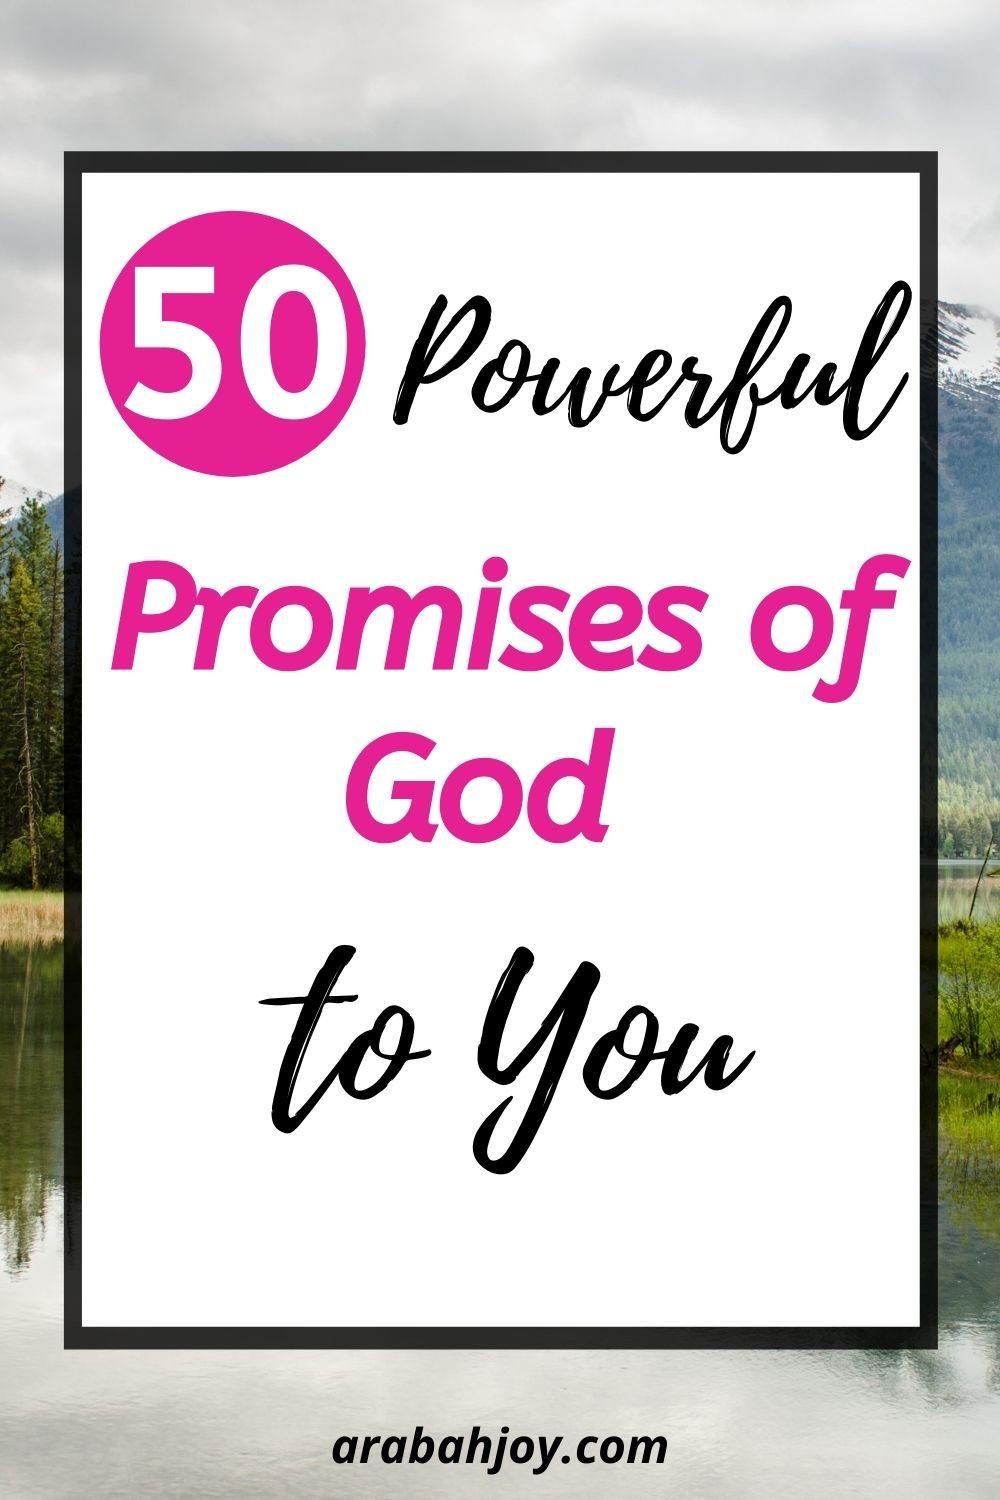 """Ever wondered what promises of God you could """"claim"""" as your own? Or wondered how not to take God's promises out of context? Here are 50 promises of God that you can count on"""